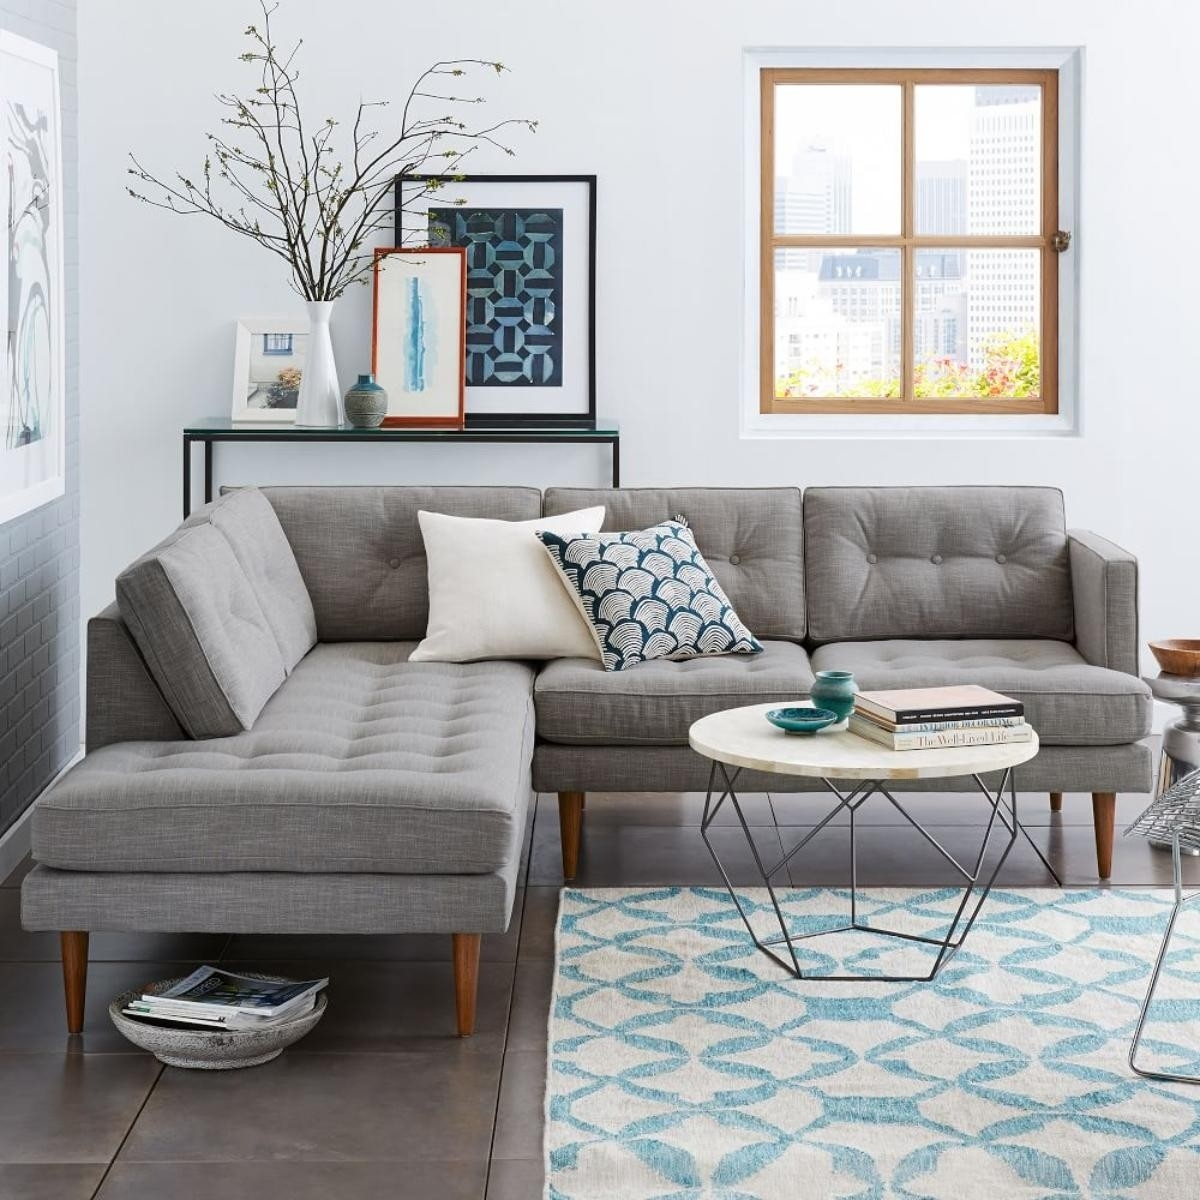 New West Elm Sectional Sofa – Buildsimplehome Intended For West Elm Sectional Sofas (Image 5 of 10)